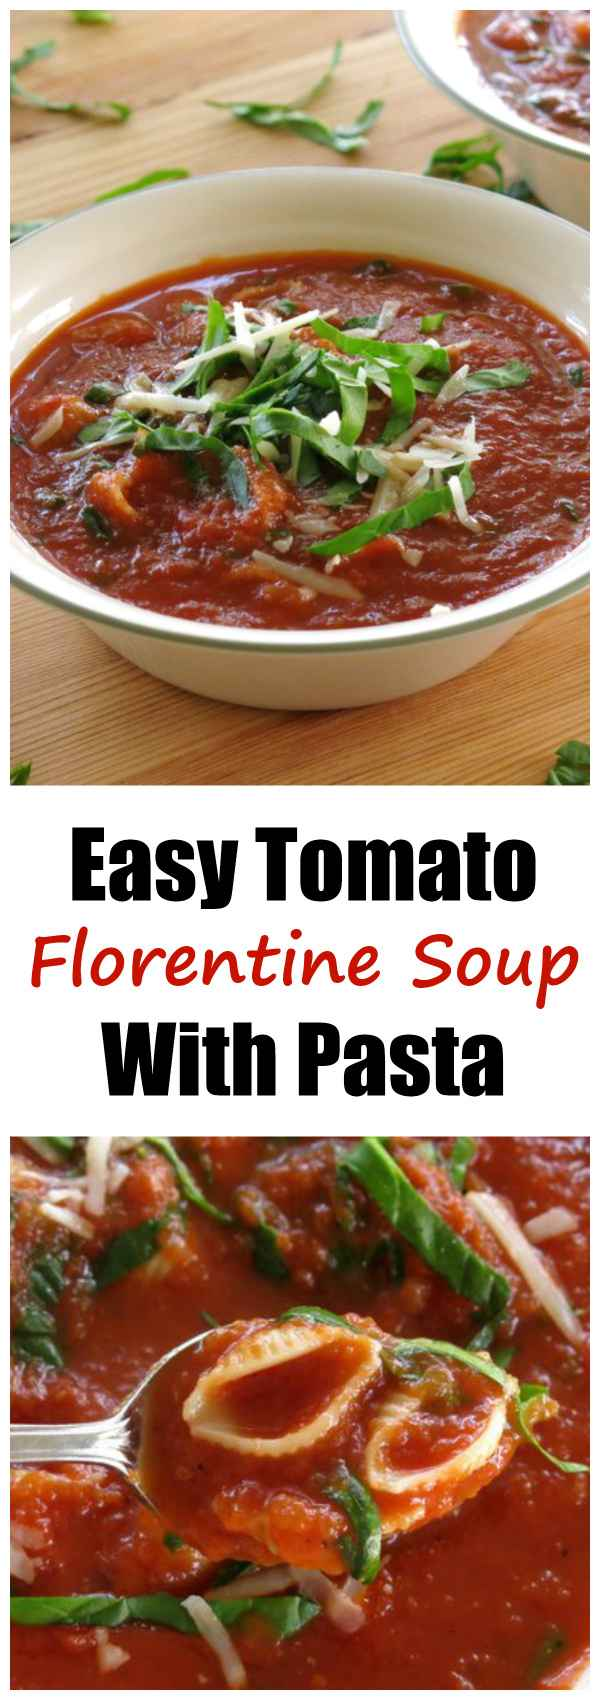 Easy Tomato Florentine Soup Recipe with Pasta. This is so delicious!! It's infused with flavor from adding a Parmesan cheese rind to the pot while cooking. Whole wheat pasta that cooks with the soup and fresh baby spinach leaves make this a super healthy recipe that is ready in under 30 minutes